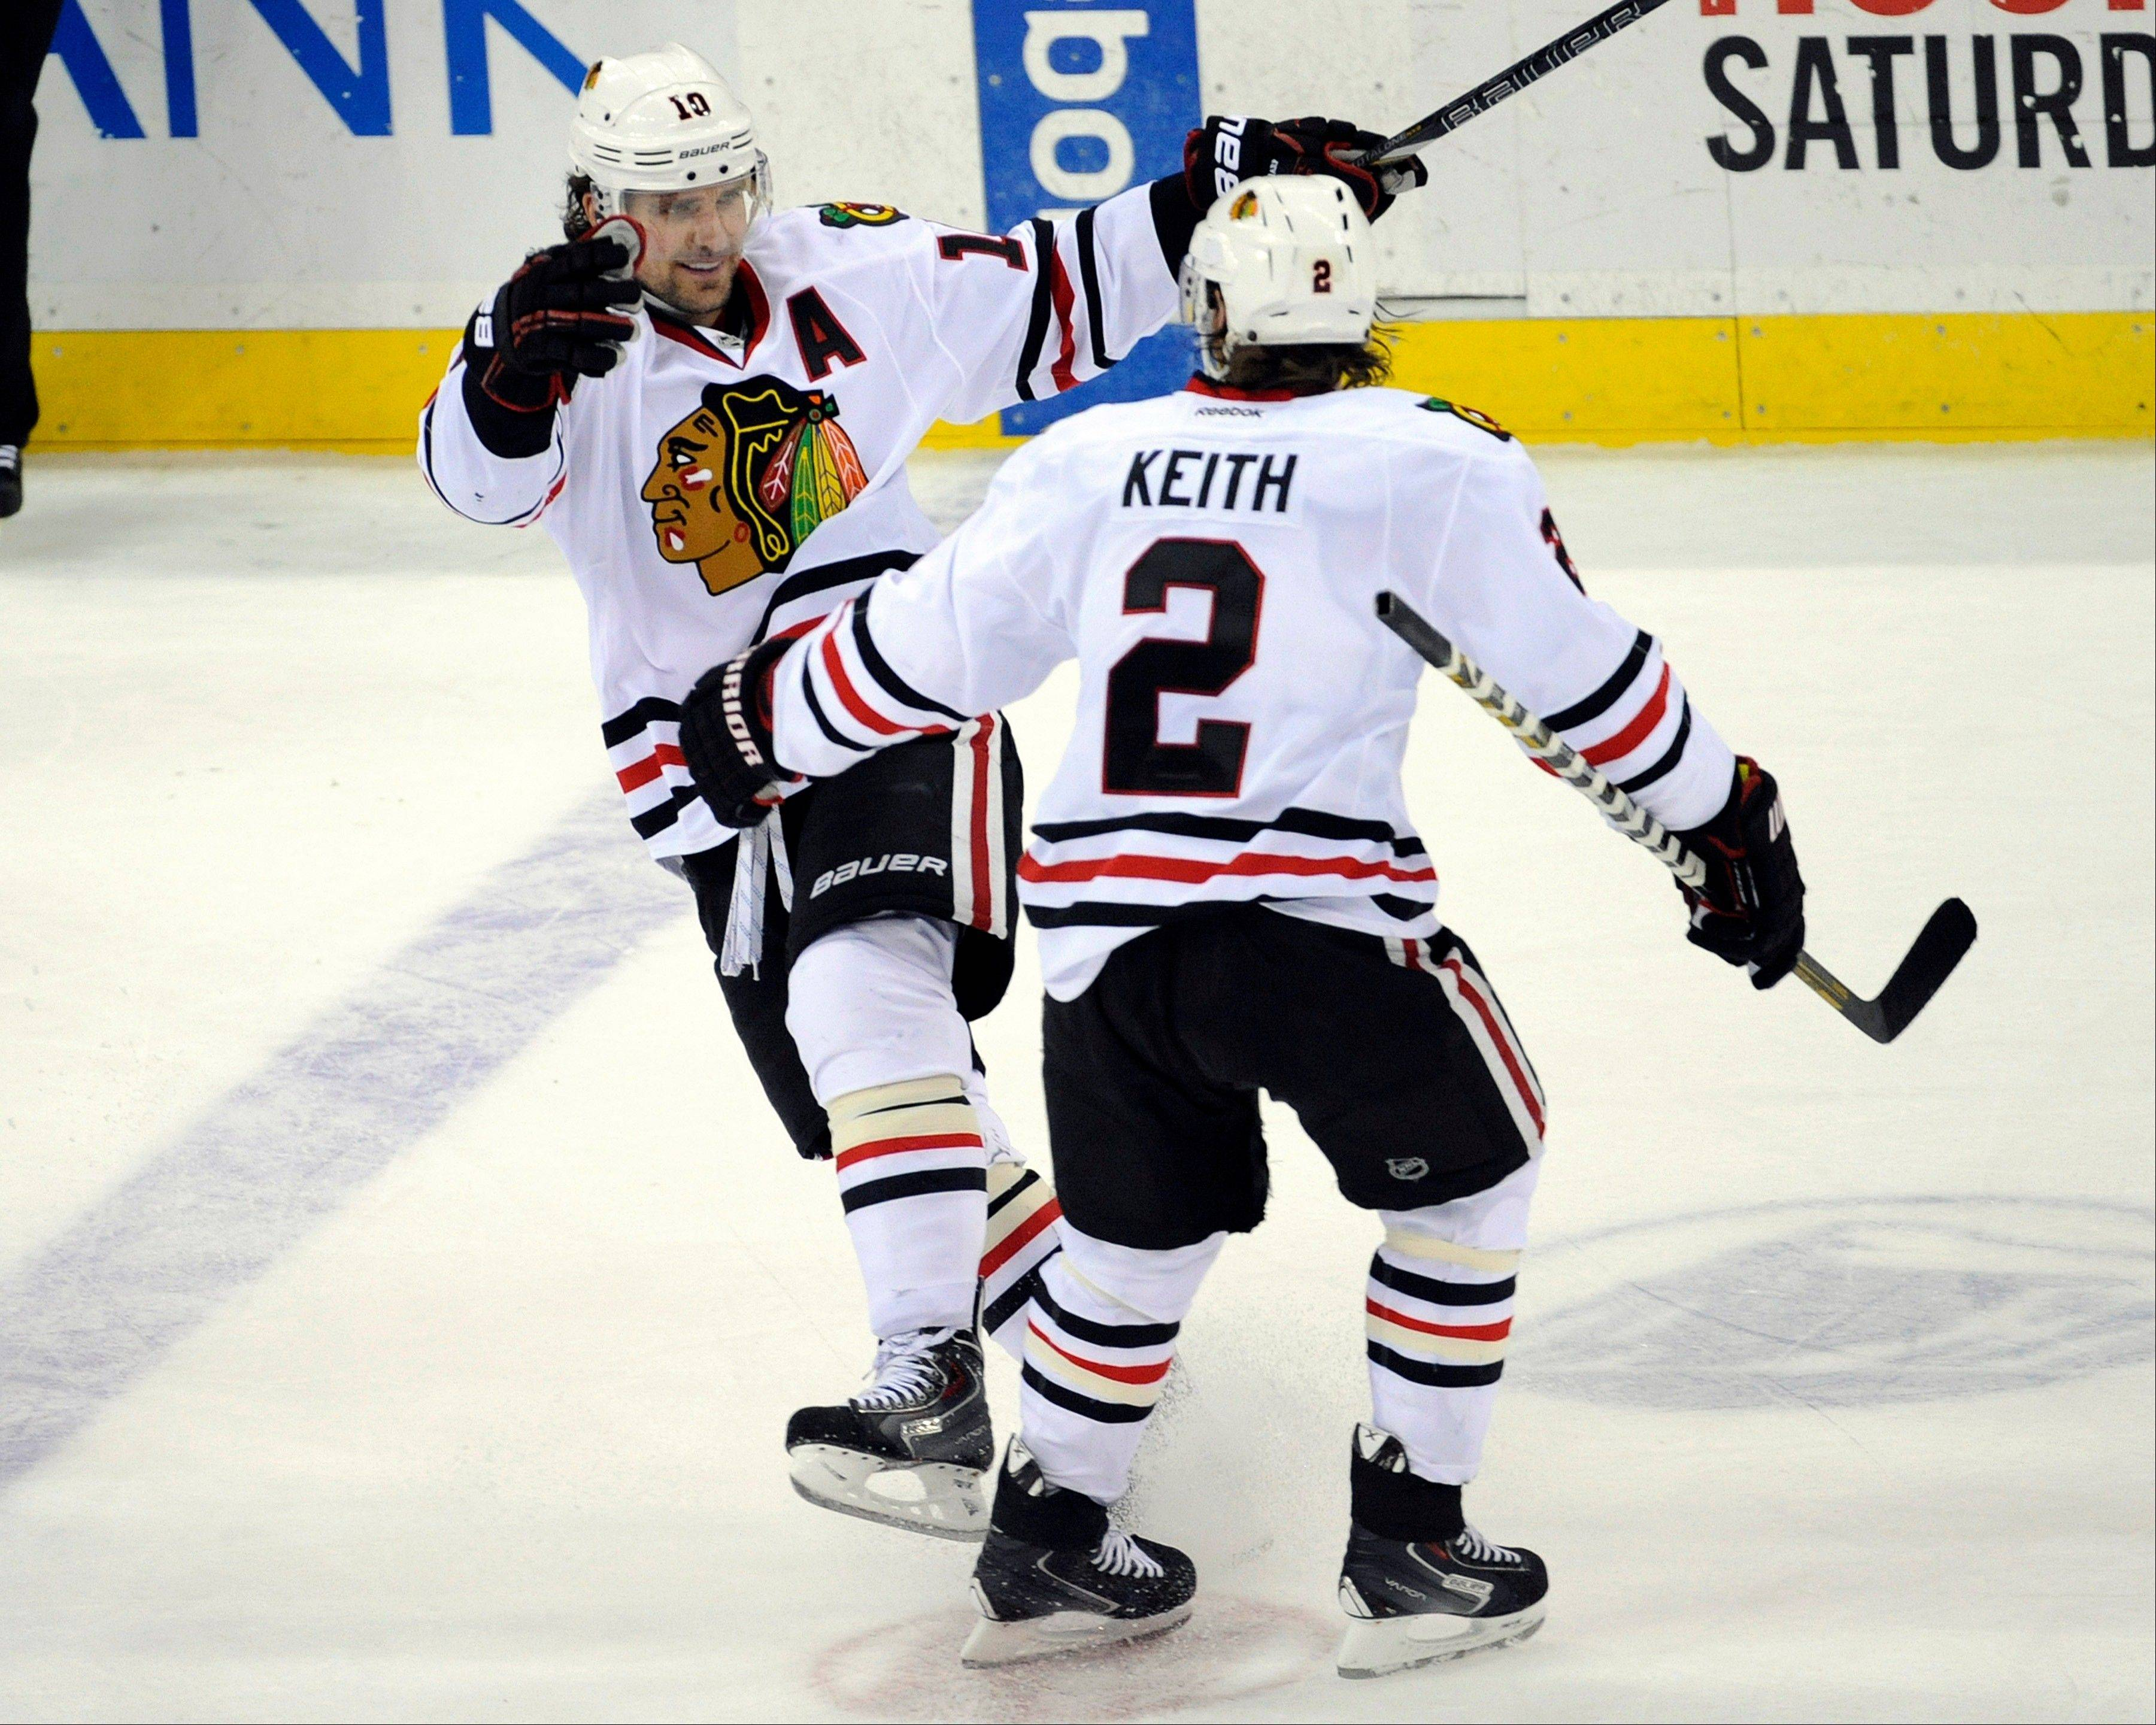 Patrick Sharp, celebrating Friday with Duncan Keith after his second hat trick in five games, says the defense has been the key to the Blackhawks' potent offense.